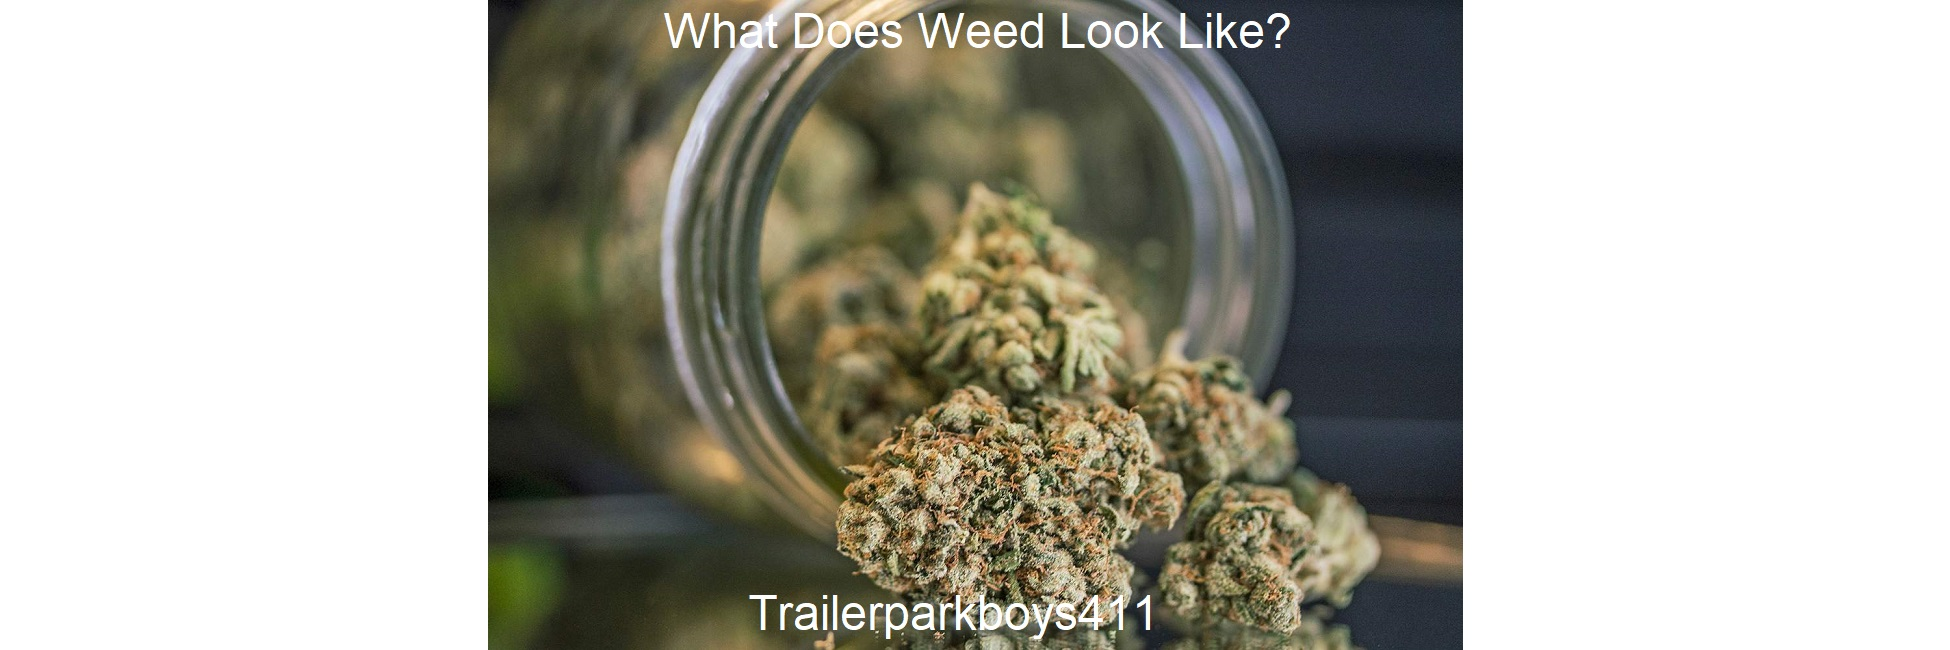 What Does Weed Look Like